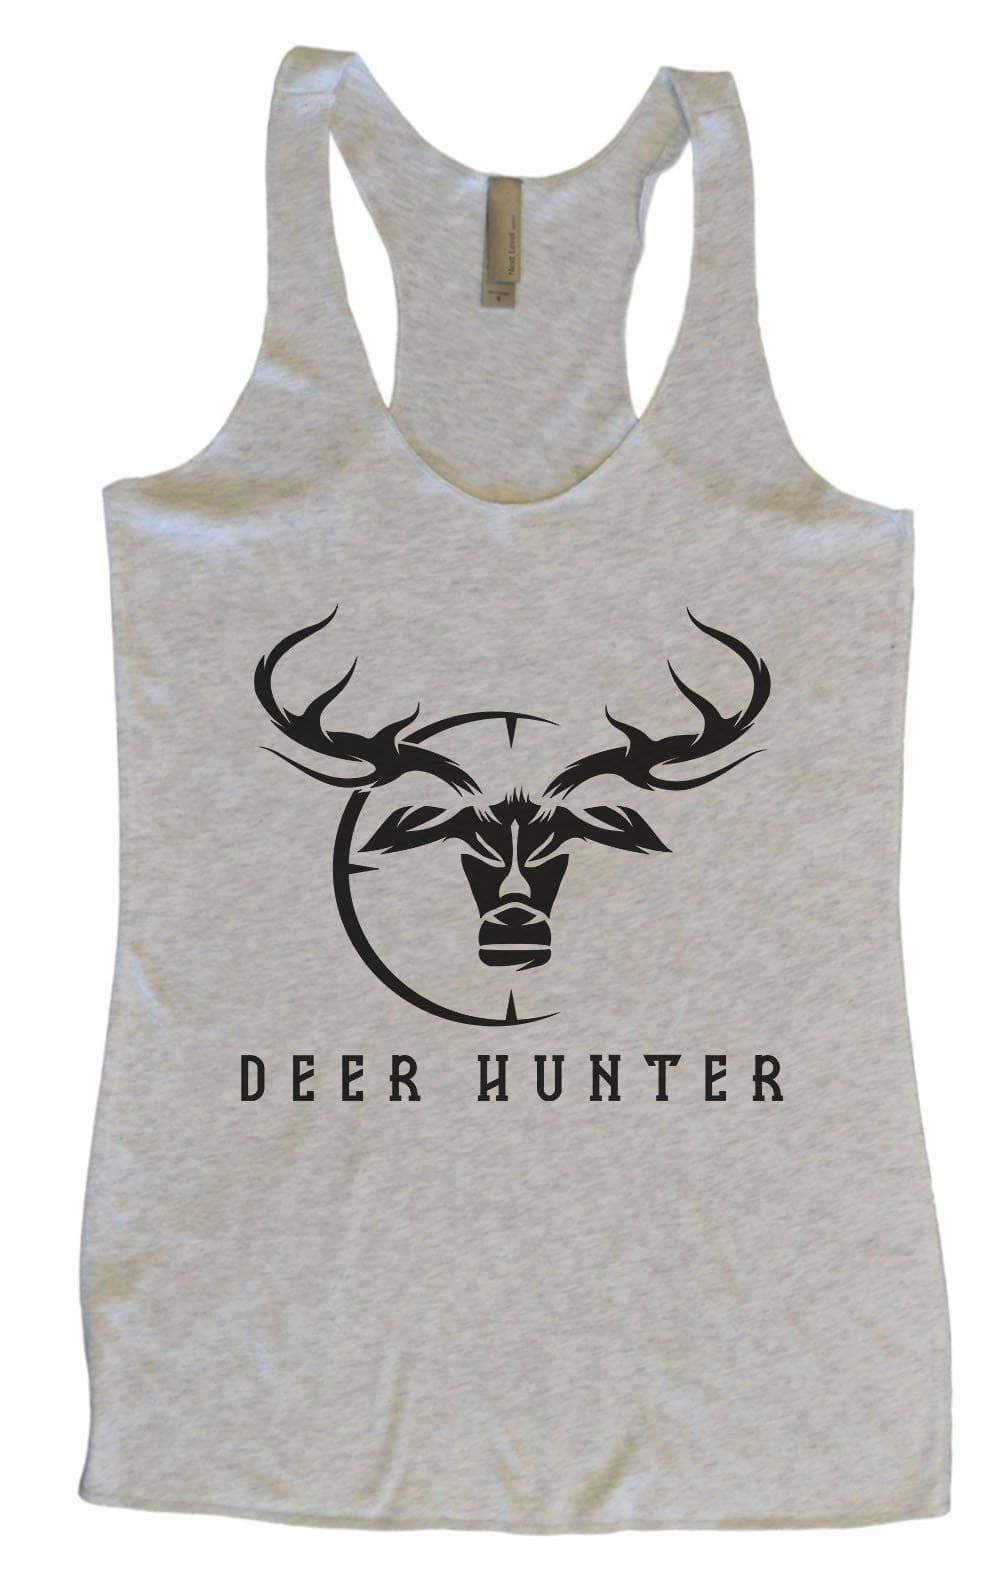 Womens Tri-Blend Tank Top - Deer Hunter Small Womens Tank Tops Vintage Grey